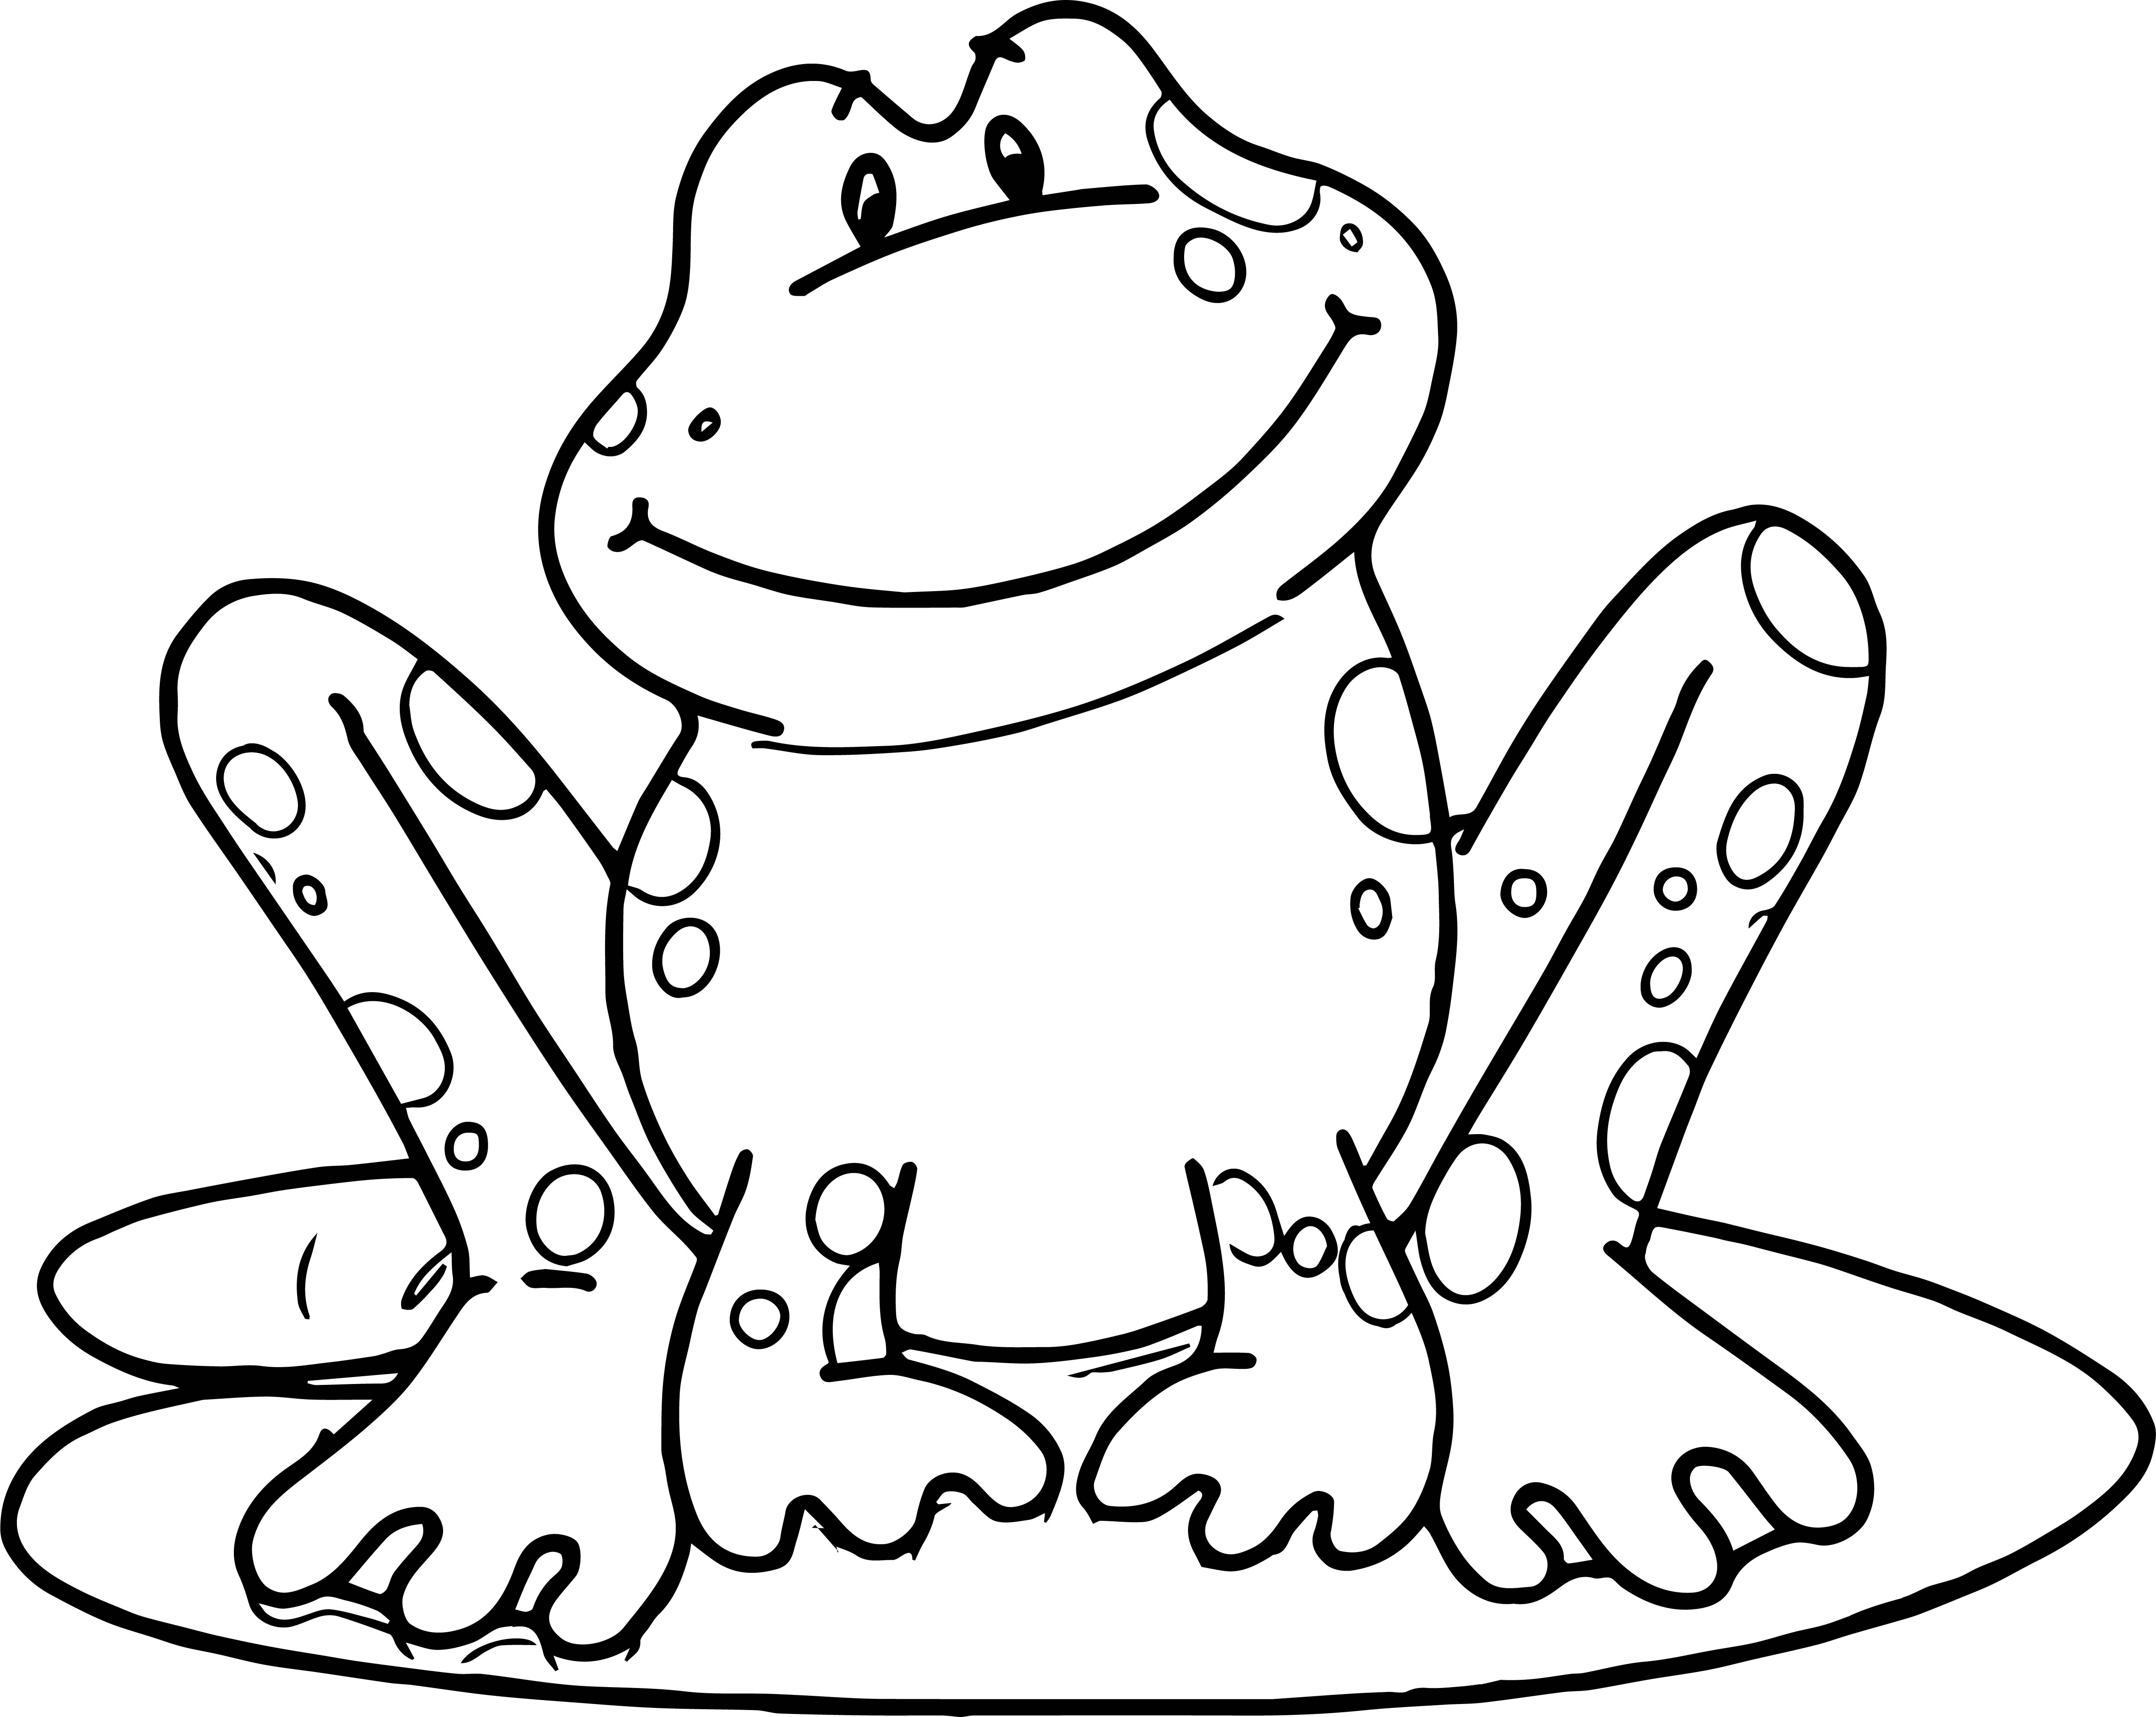 Frog Stay Coloring Page